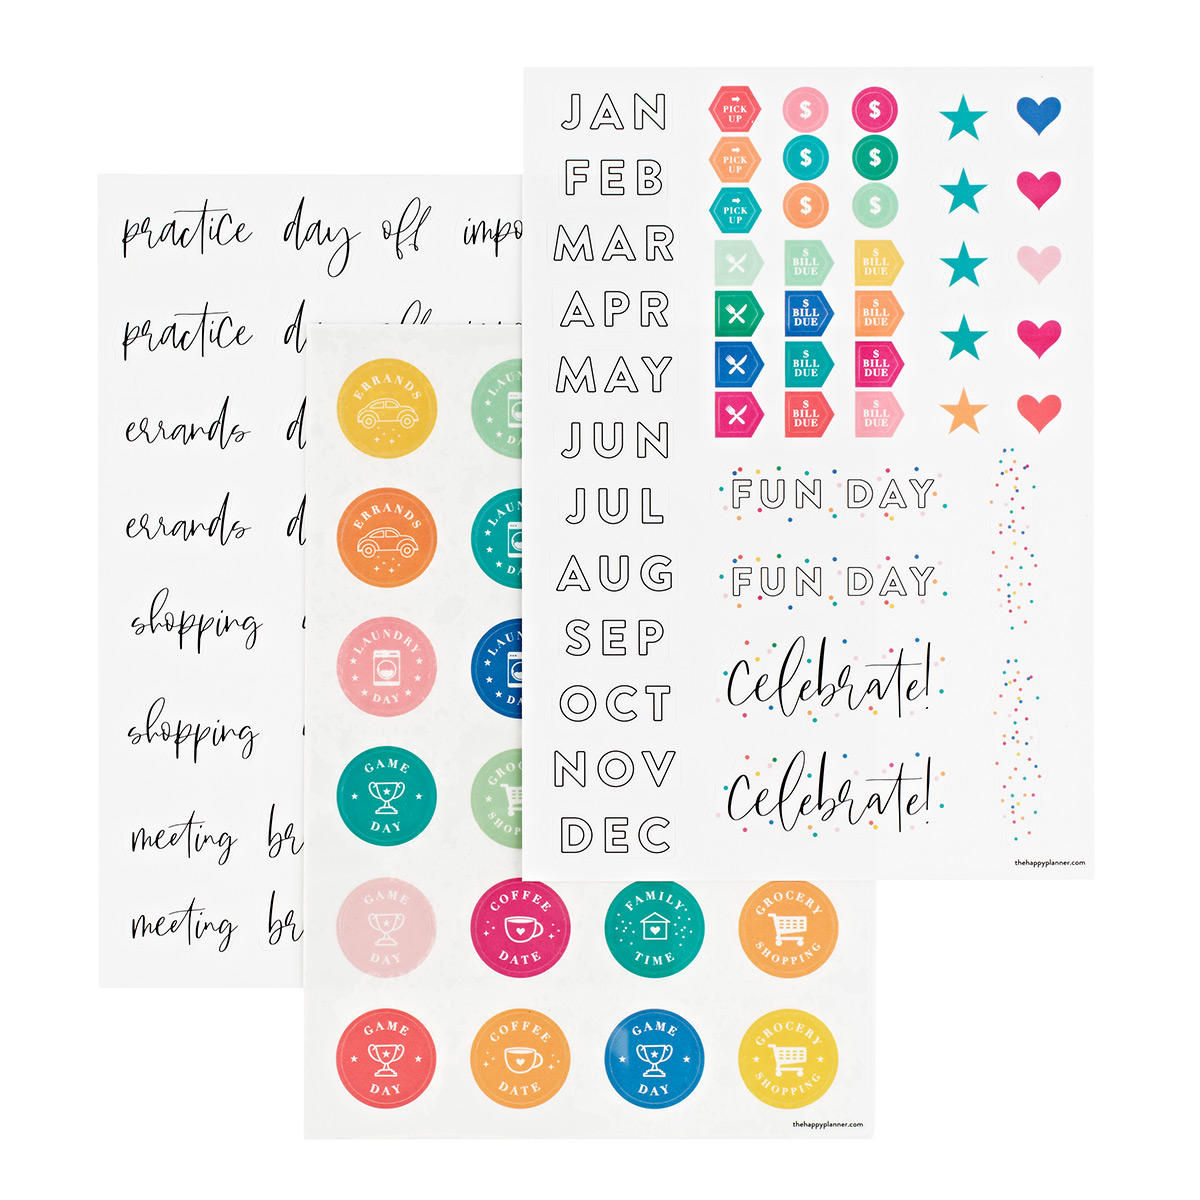 Removable Calendar Reminder Symbol Decals